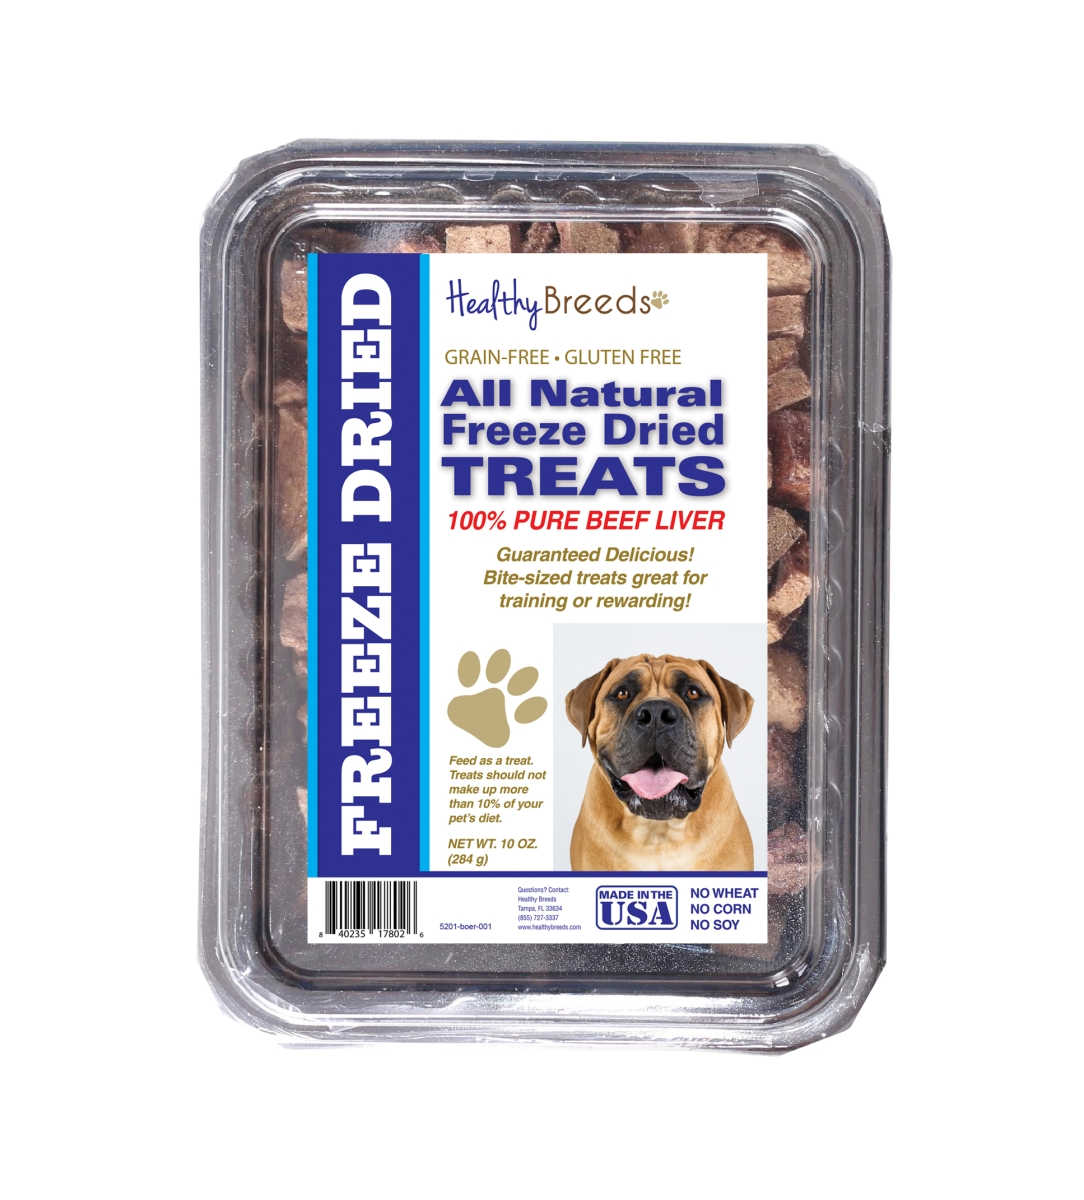 Healthy Breeds 840235178026 10 oz Boerboel All Natural Freeze Dried Treats Beef Liver